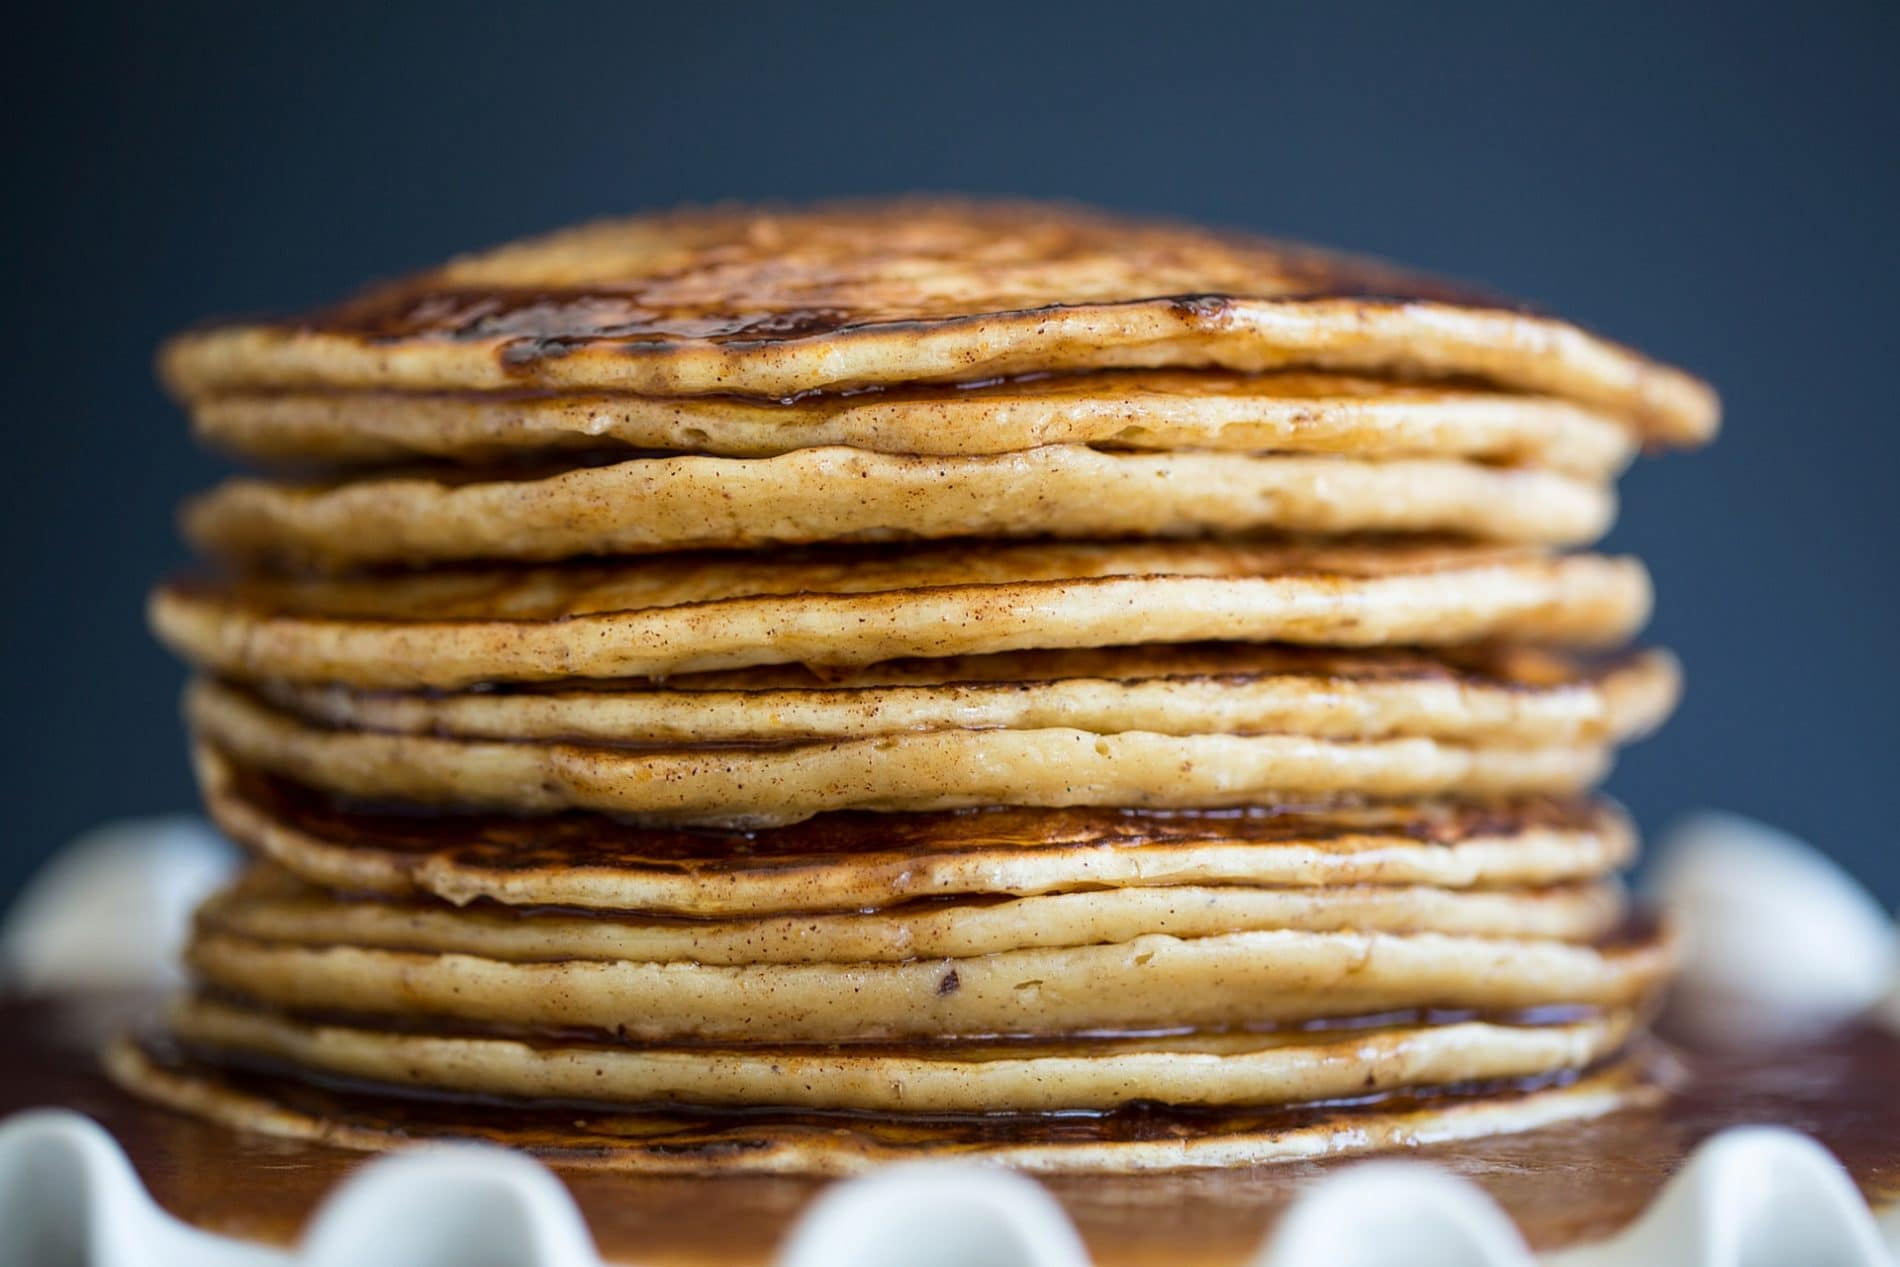 Carb Backloading: Lose Weight by Eating Pancakes for Dinner